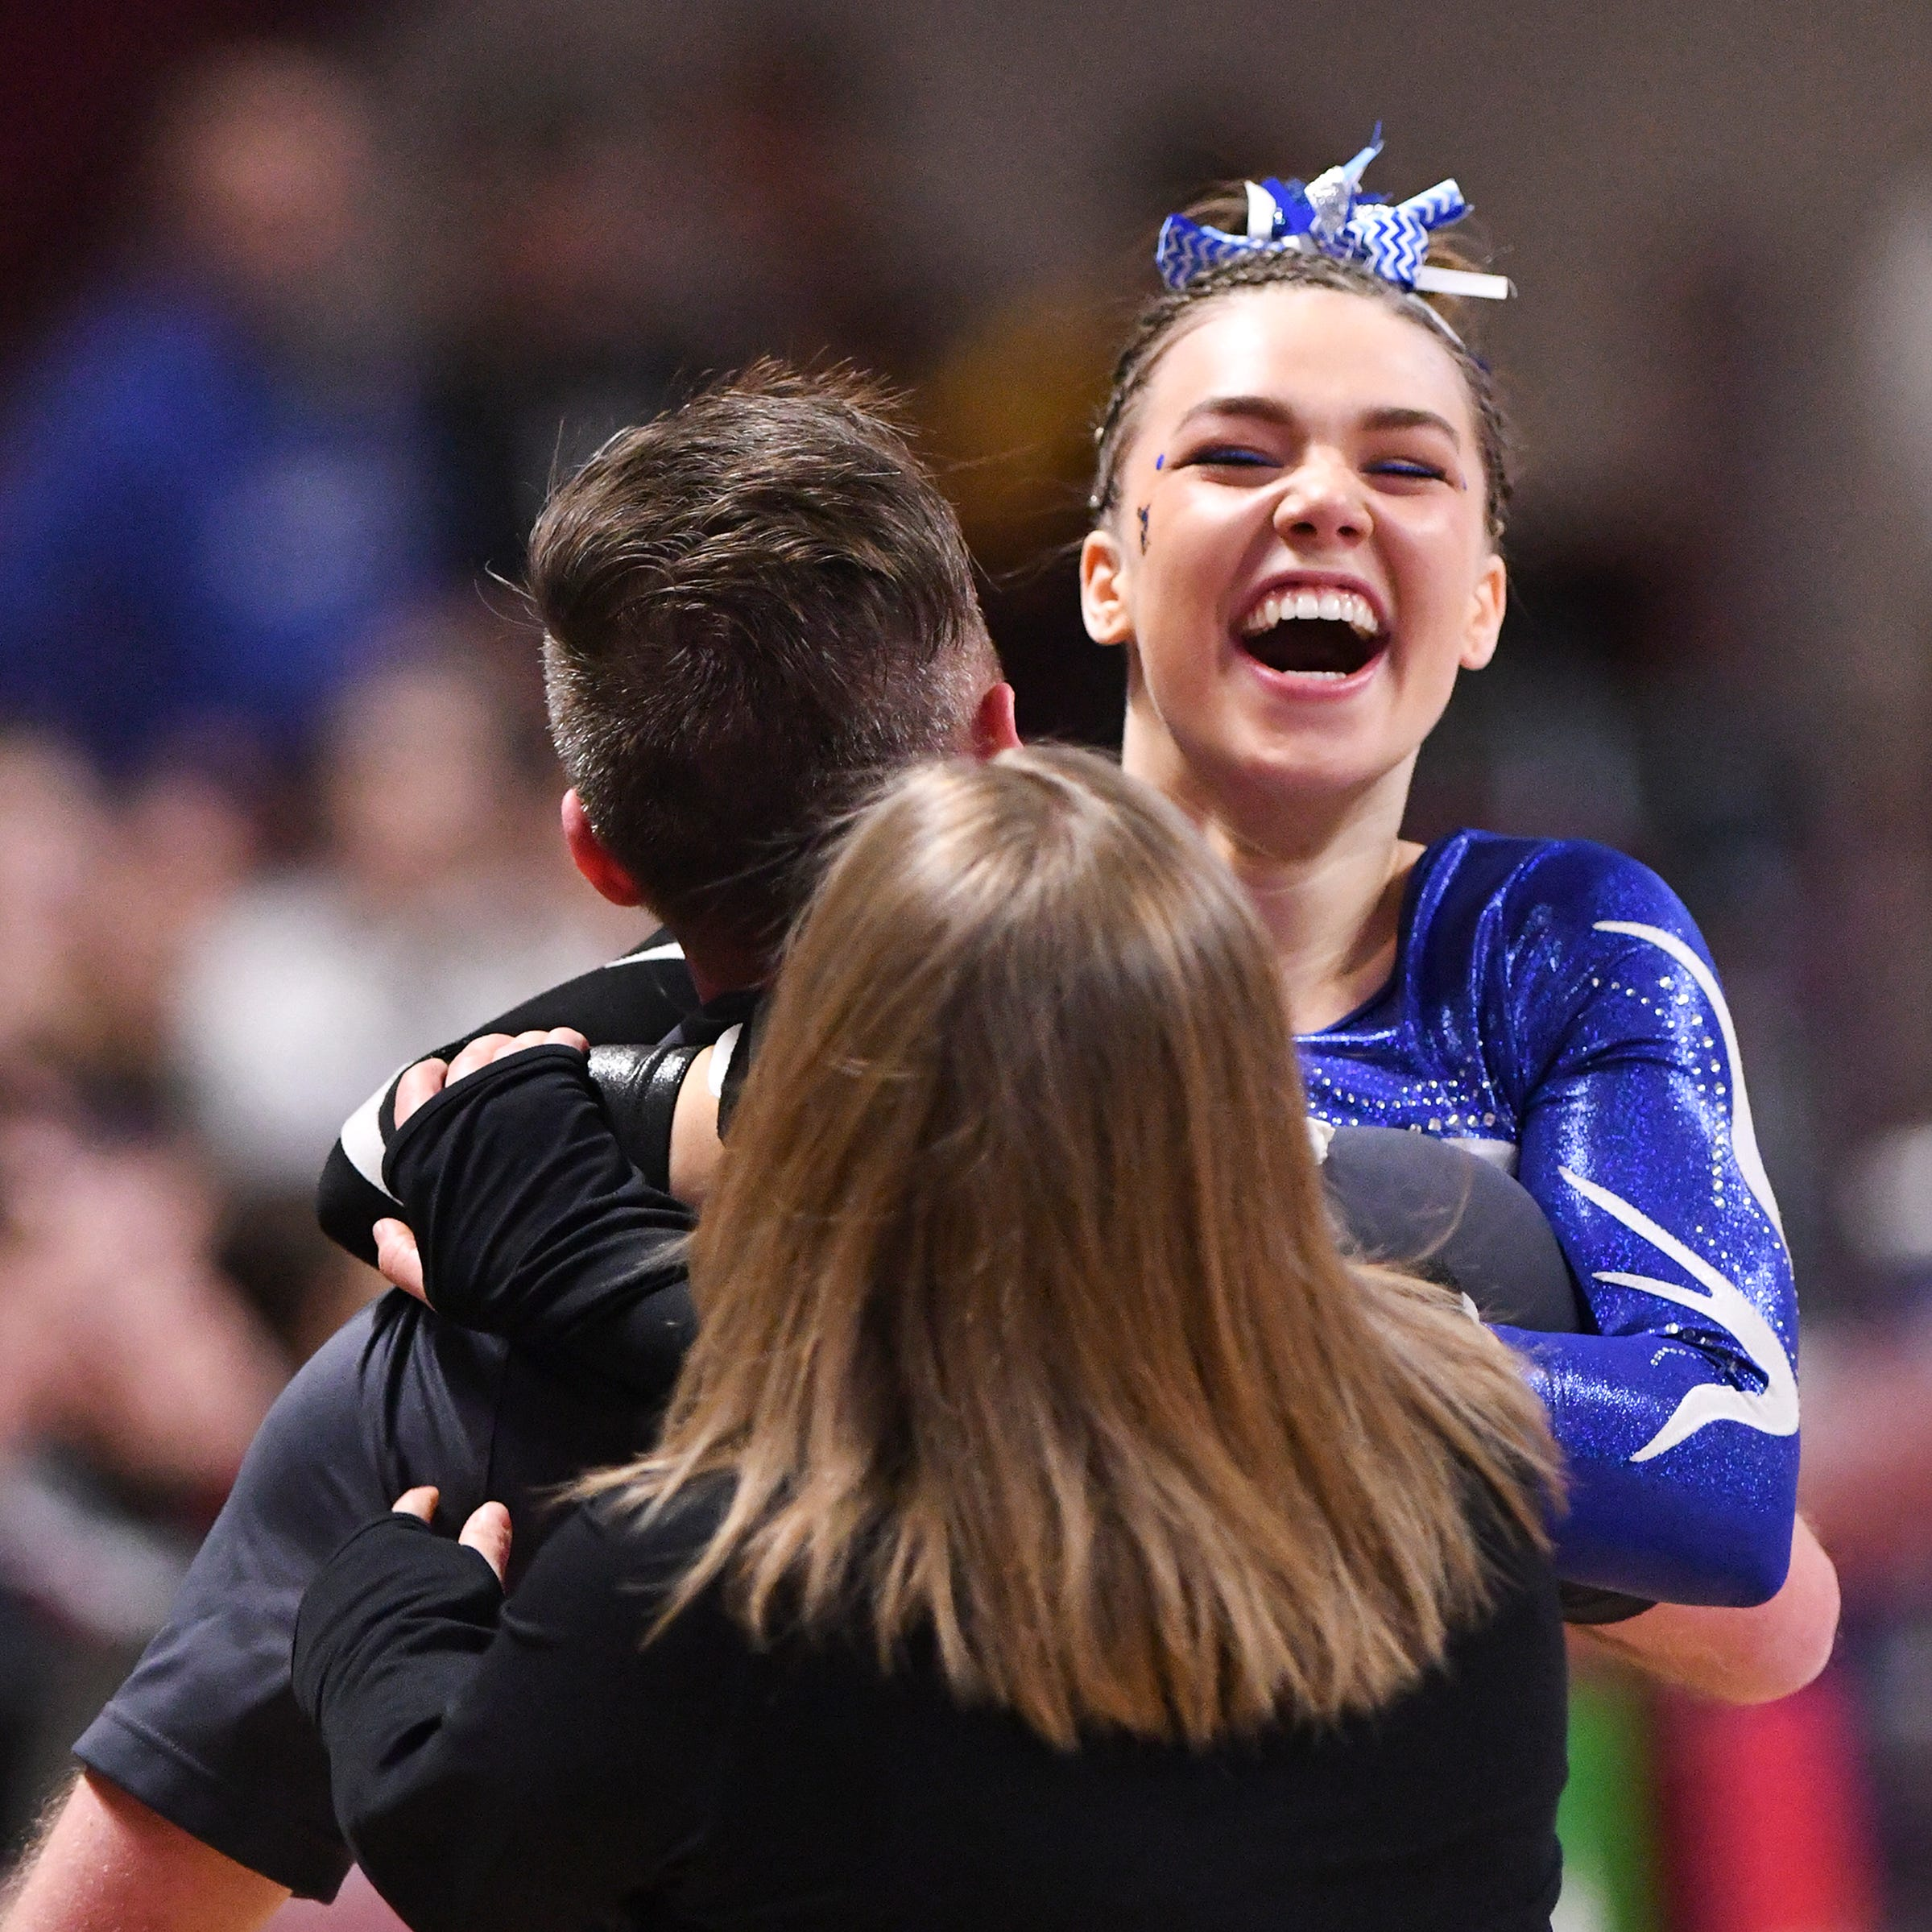 Sweet redemption: Second-place finish special for Sartell